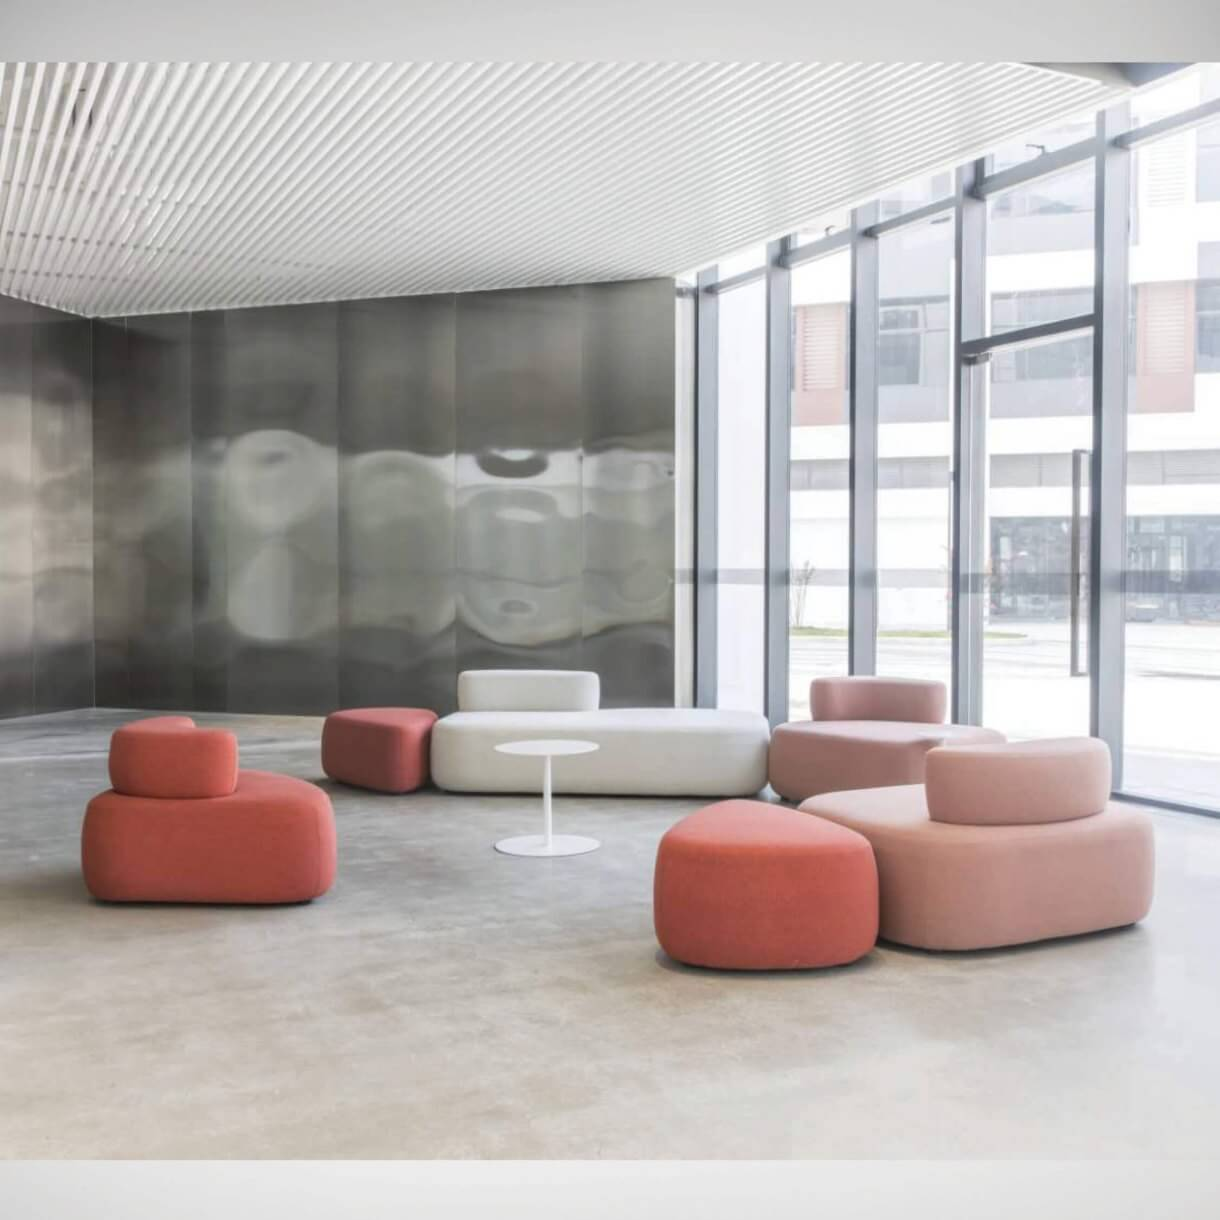 Maintain Safe Social Distance in the Office Reception with Modular Sofas - Comfort Furniture